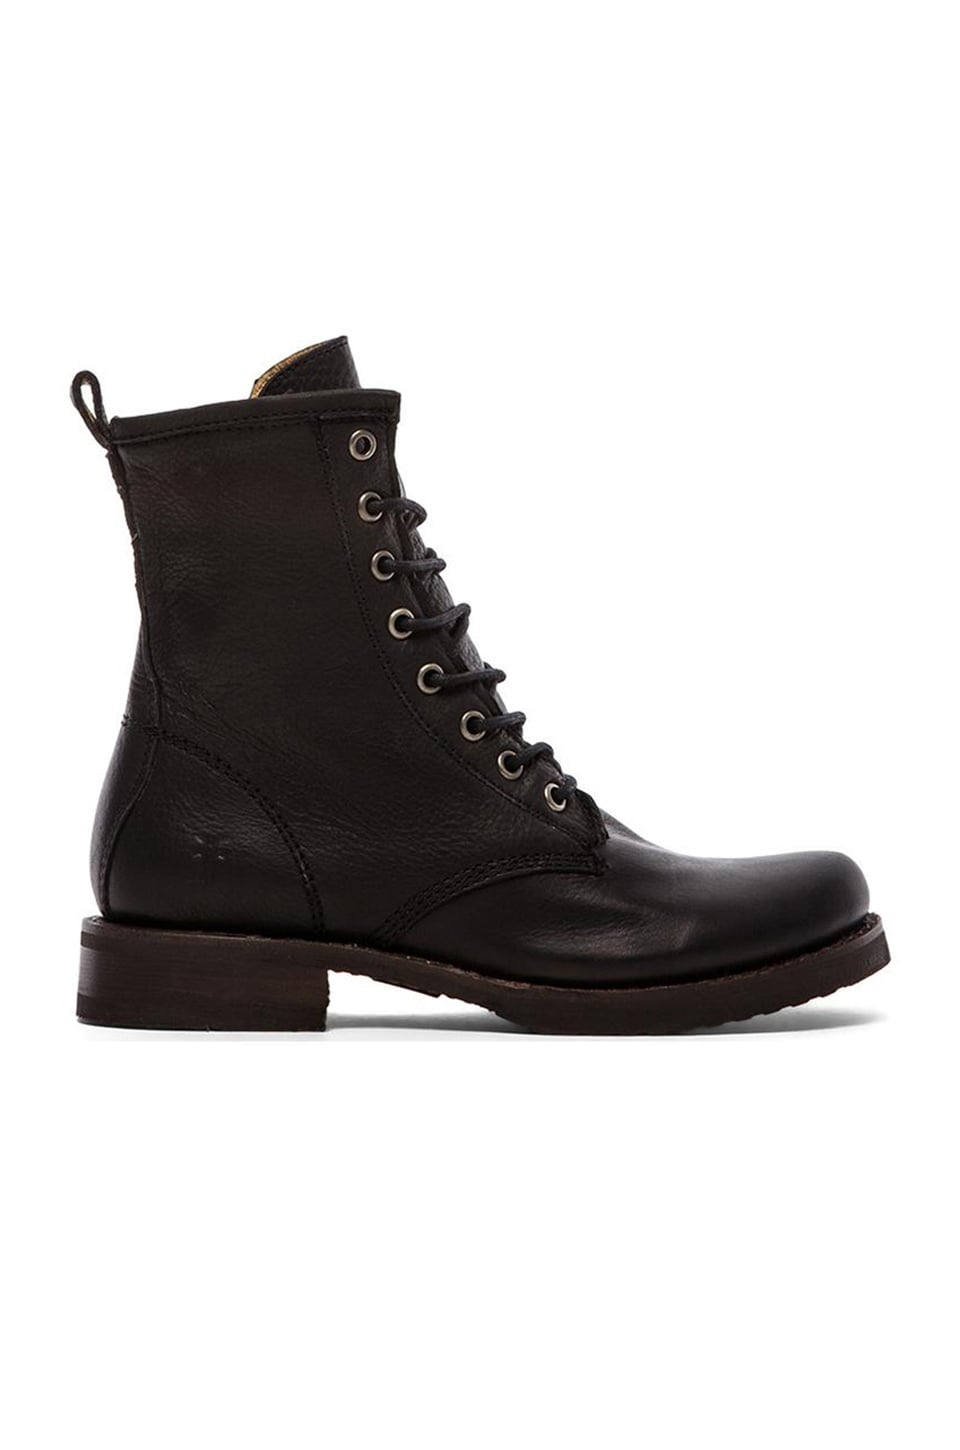 Frye Veronica Combat in Black